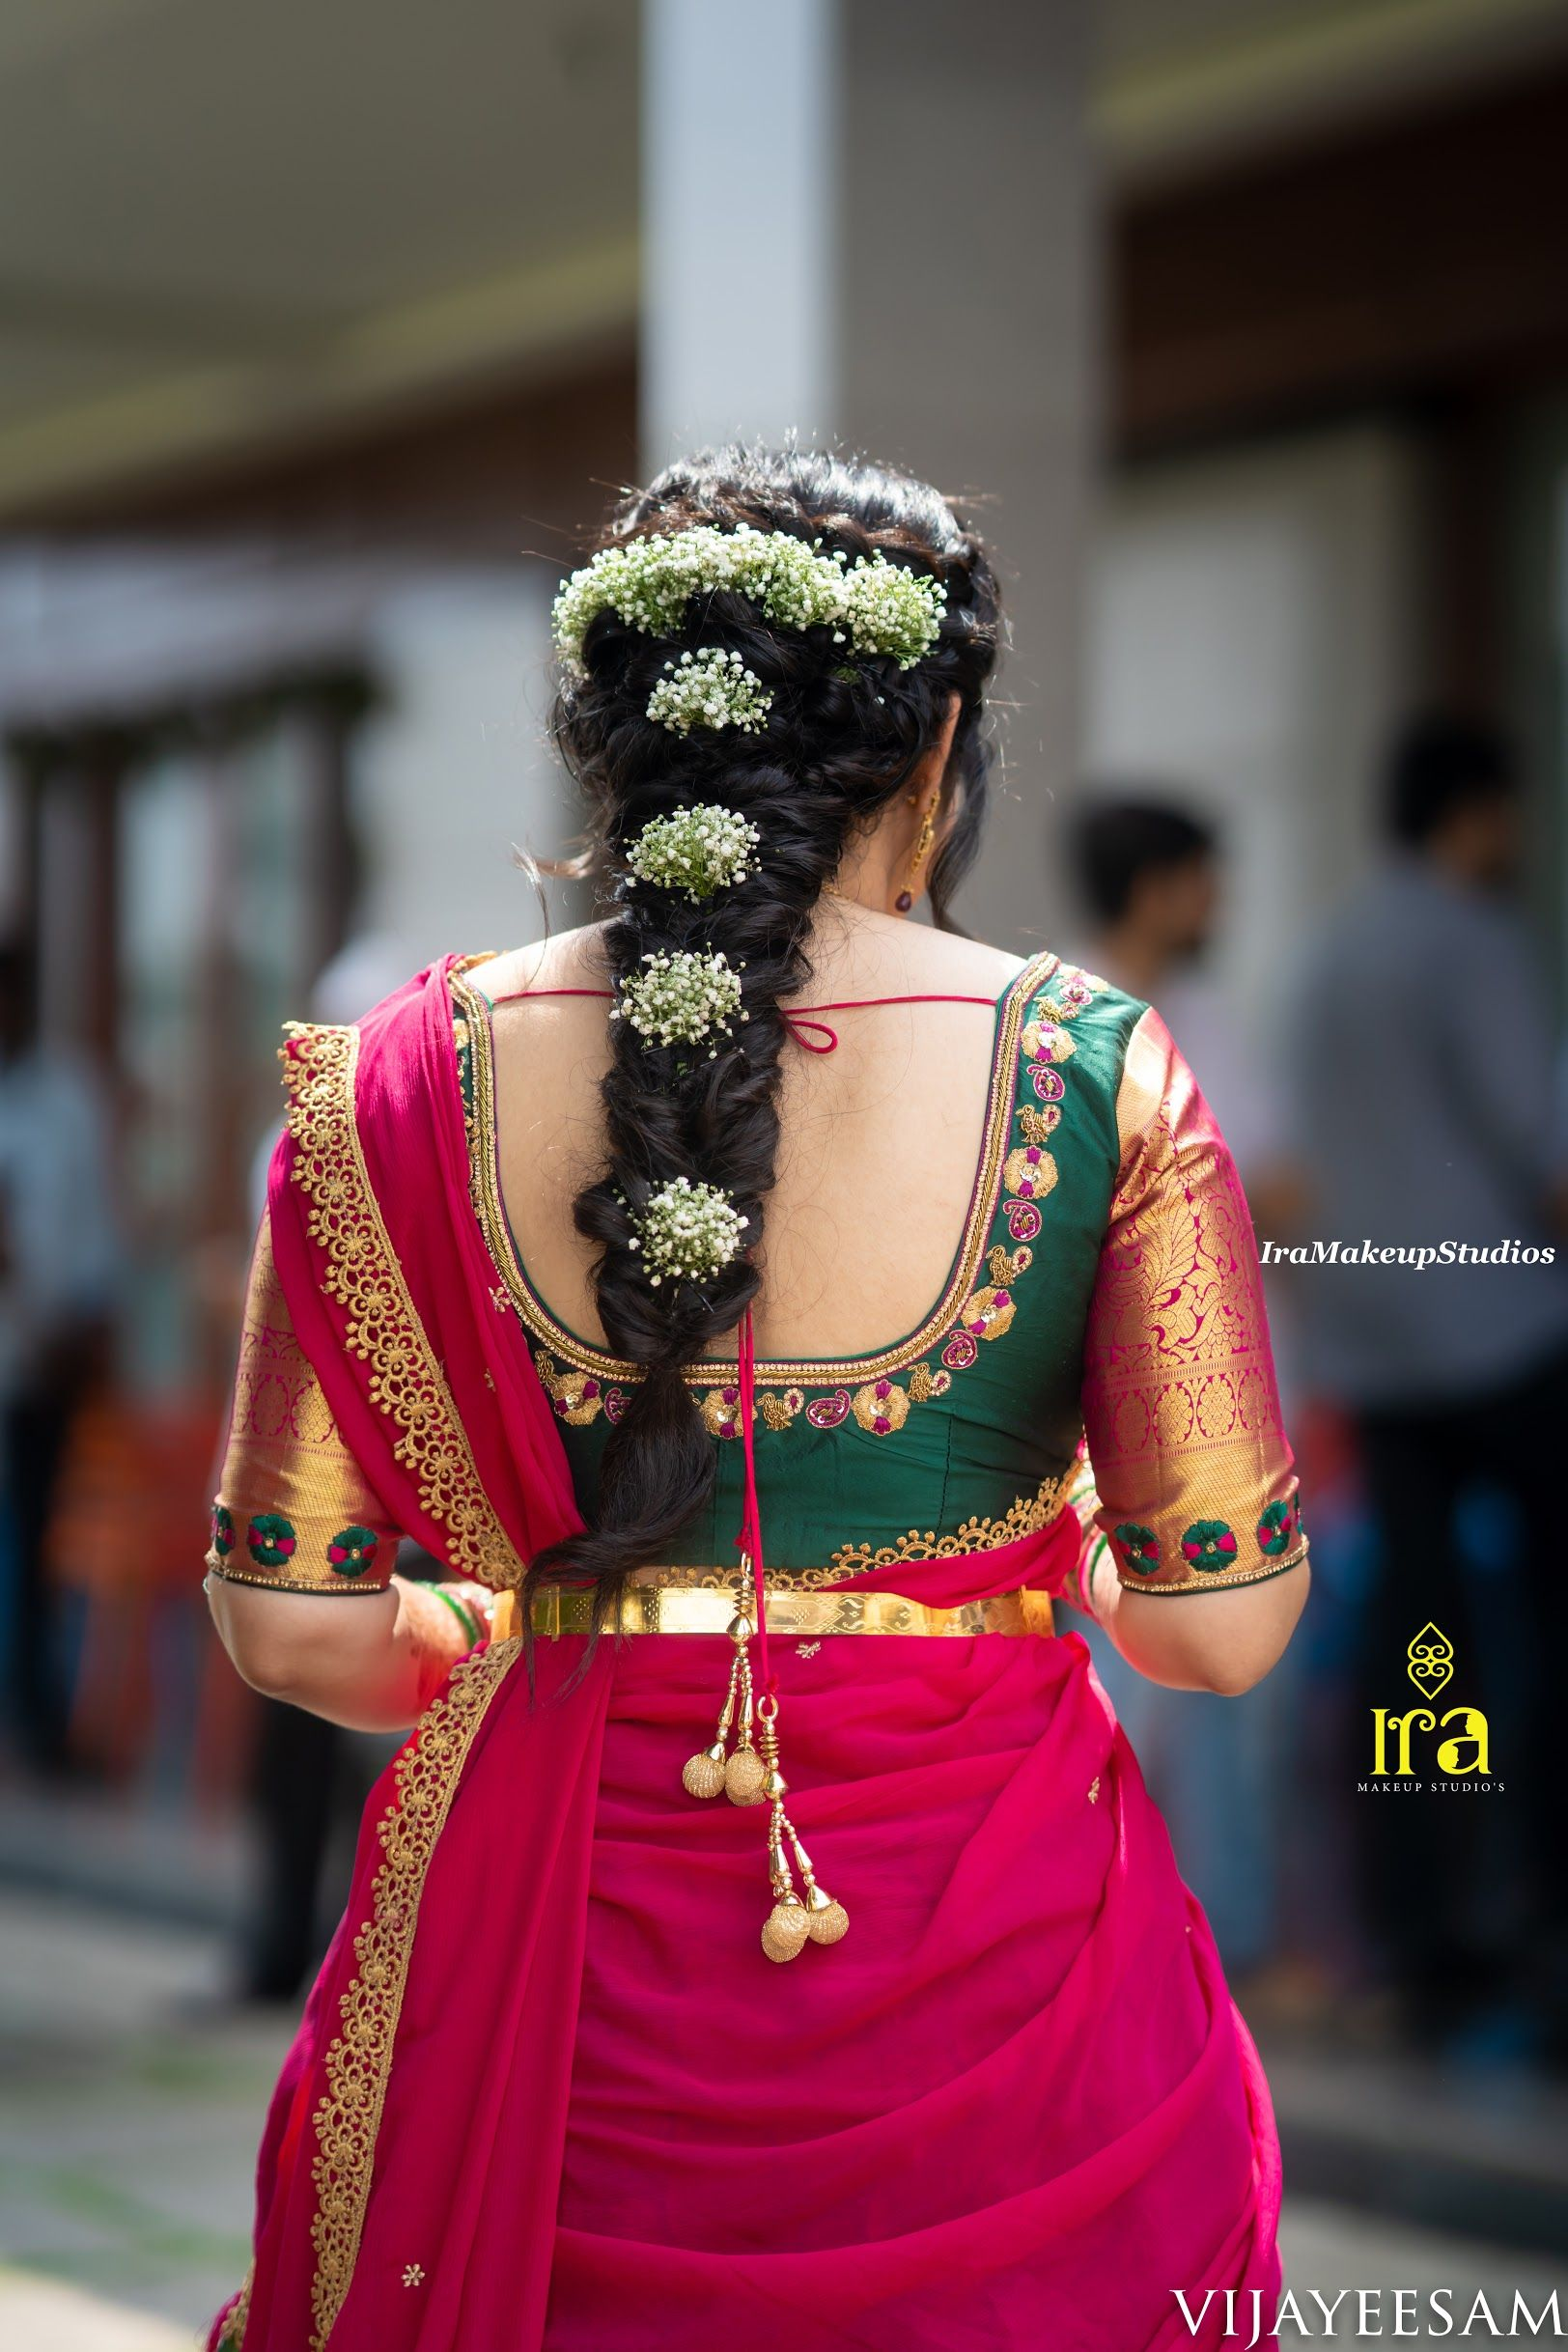 Hair Style Goals Engagement Look Braided Hairstyles For Wedding Indian Bridal Hairstyles Half Saree Designs